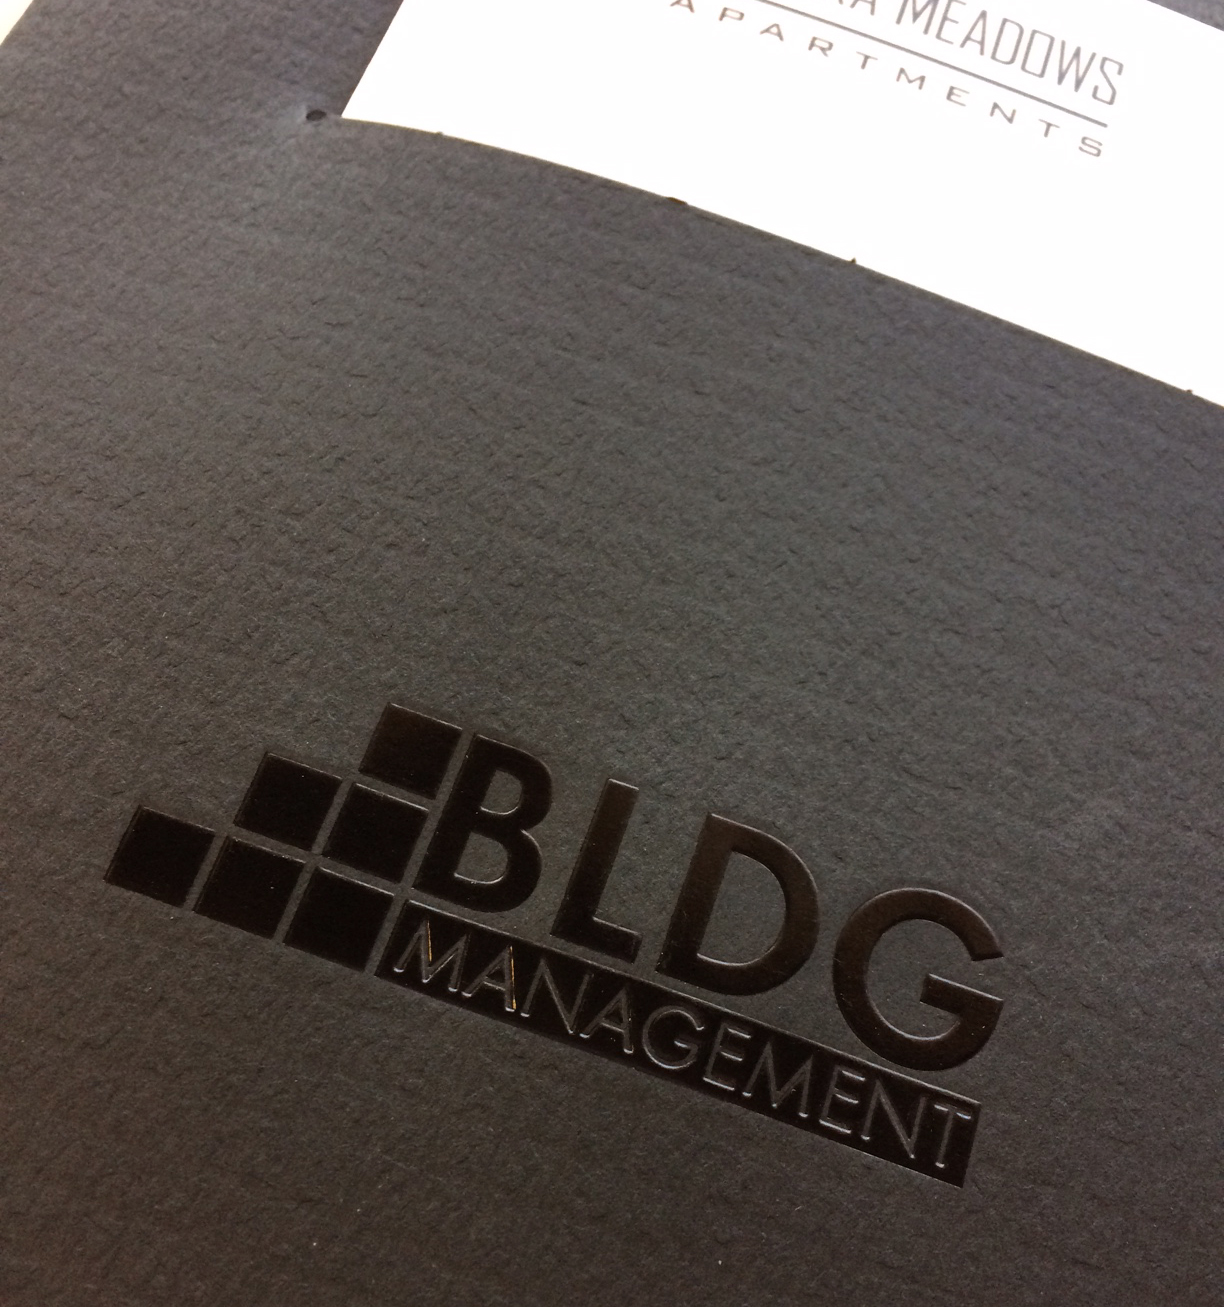 Foil and embossing on a BLDG Management folder